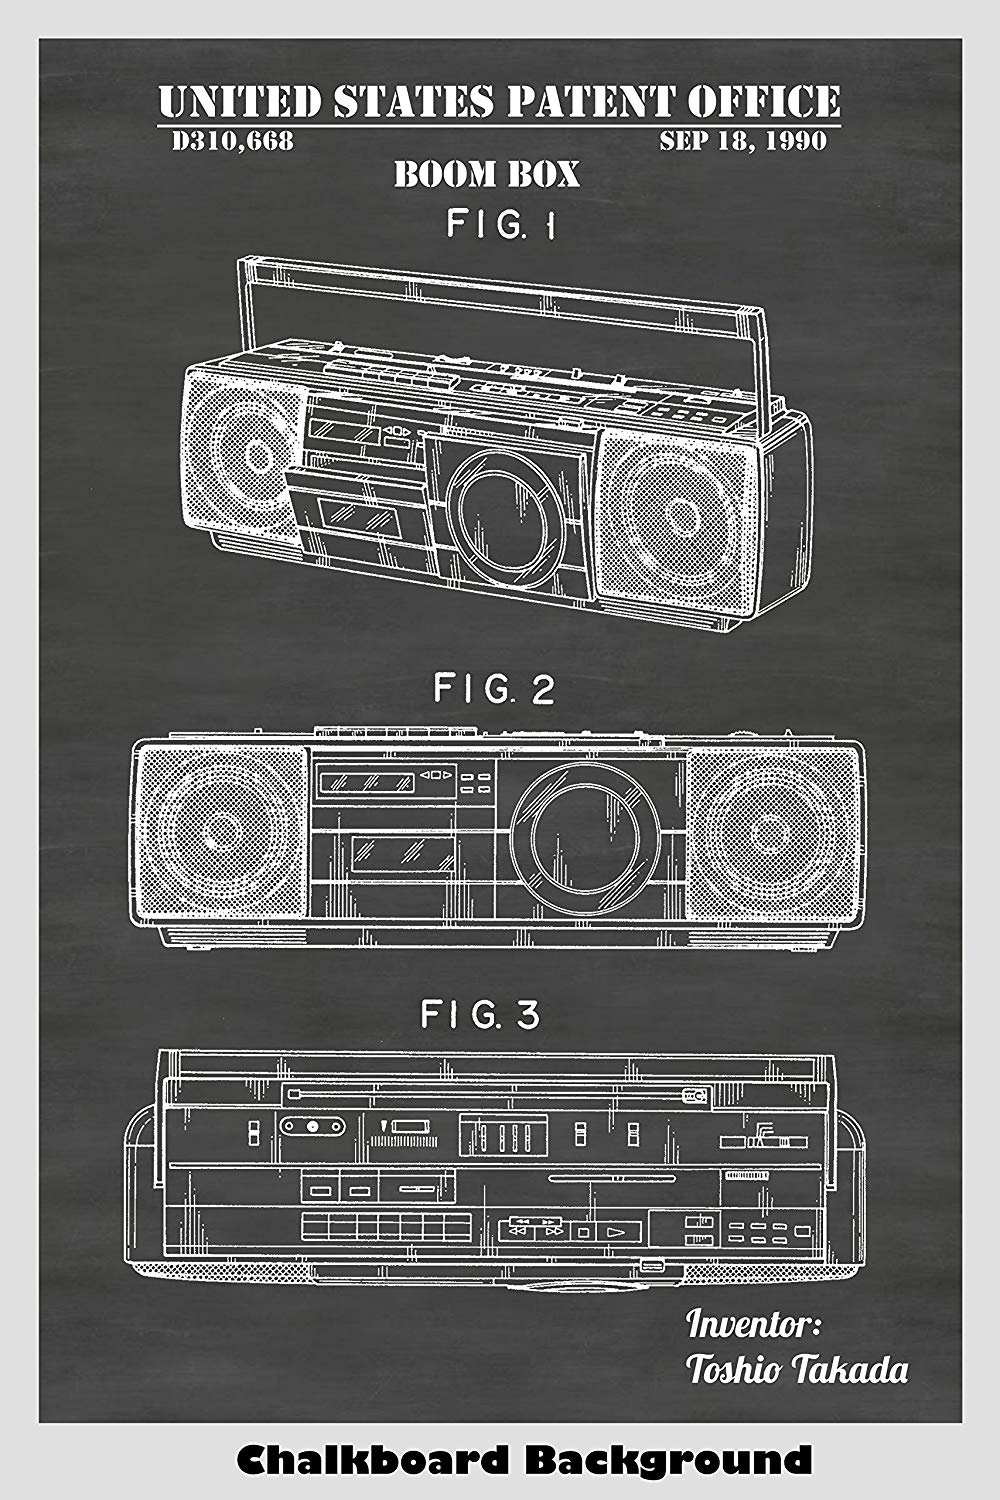 Combined Radio, Cassette Tape Recorder and Digital Audio Disk Player Boom Box Patent Art